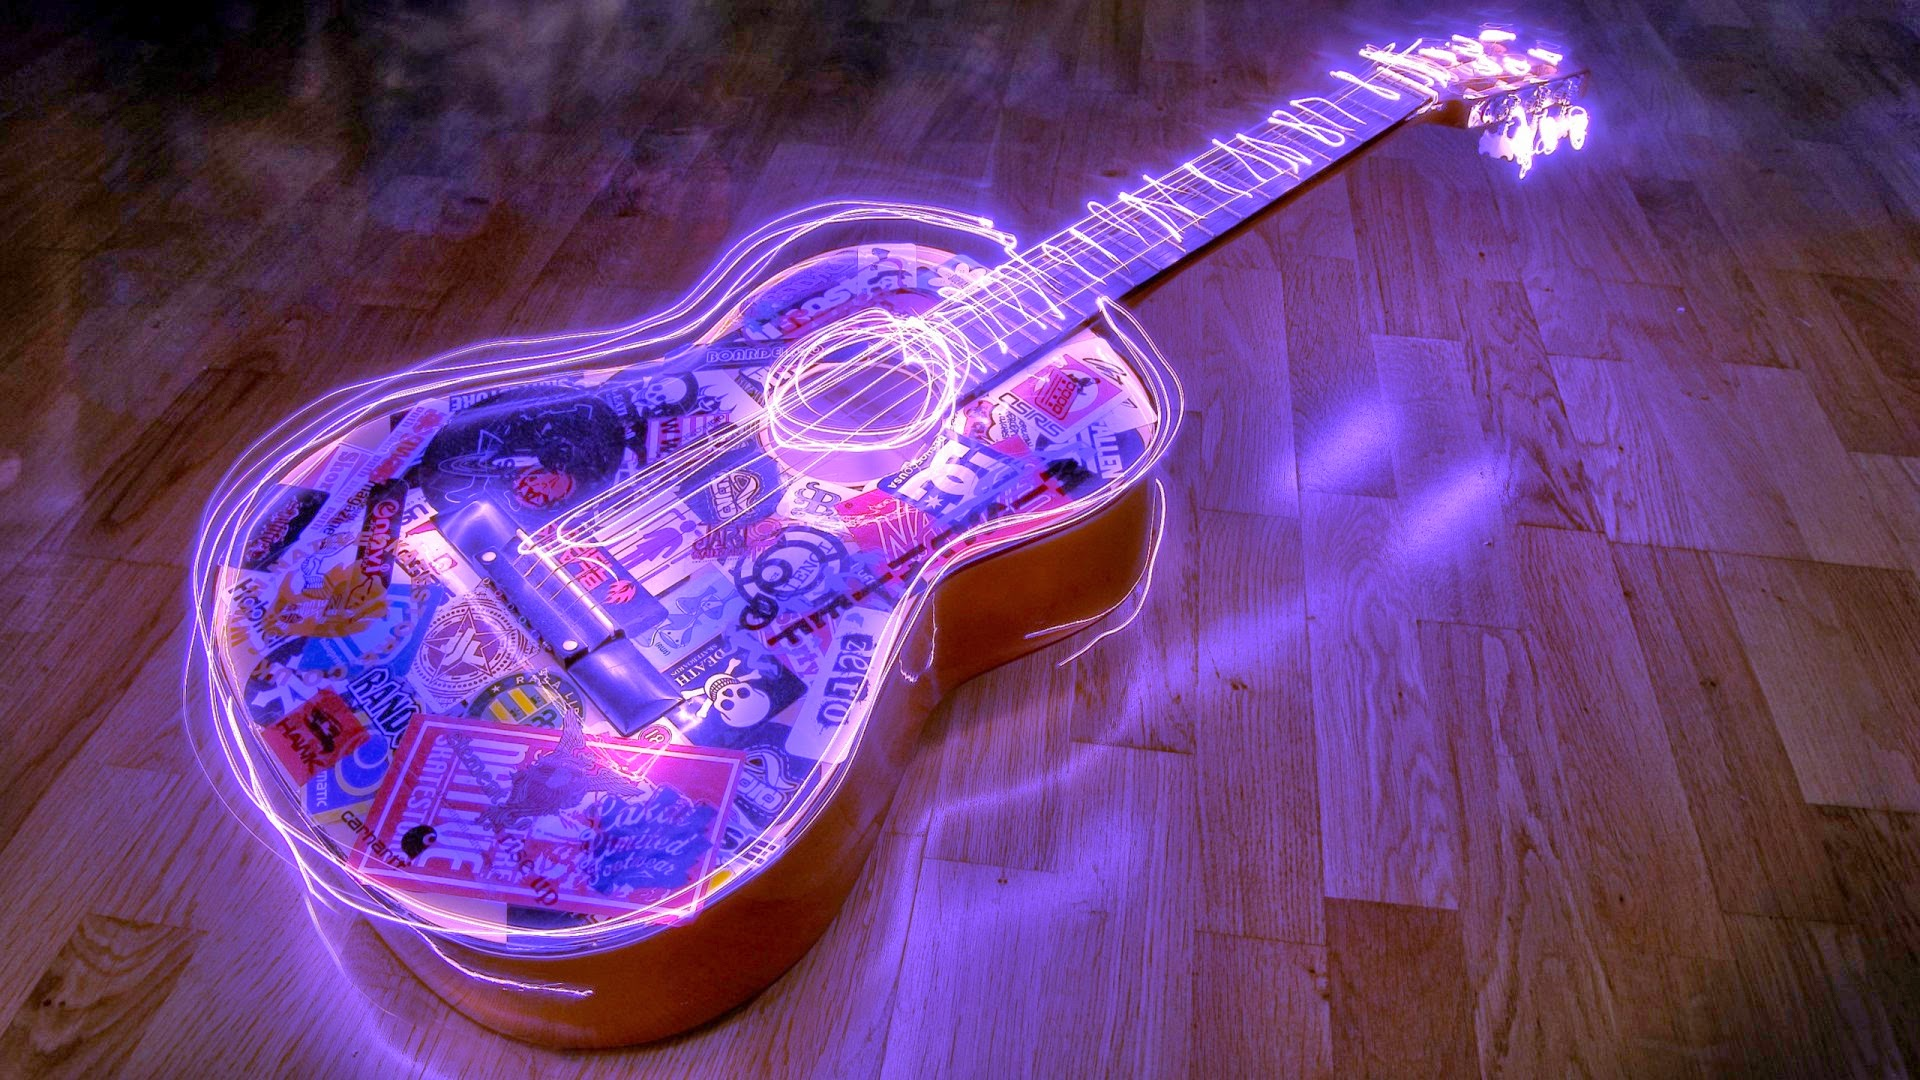 neon guitar full hd desktop wallpapers 1080p. Black Bedroom Furniture Sets. Home Design Ideas